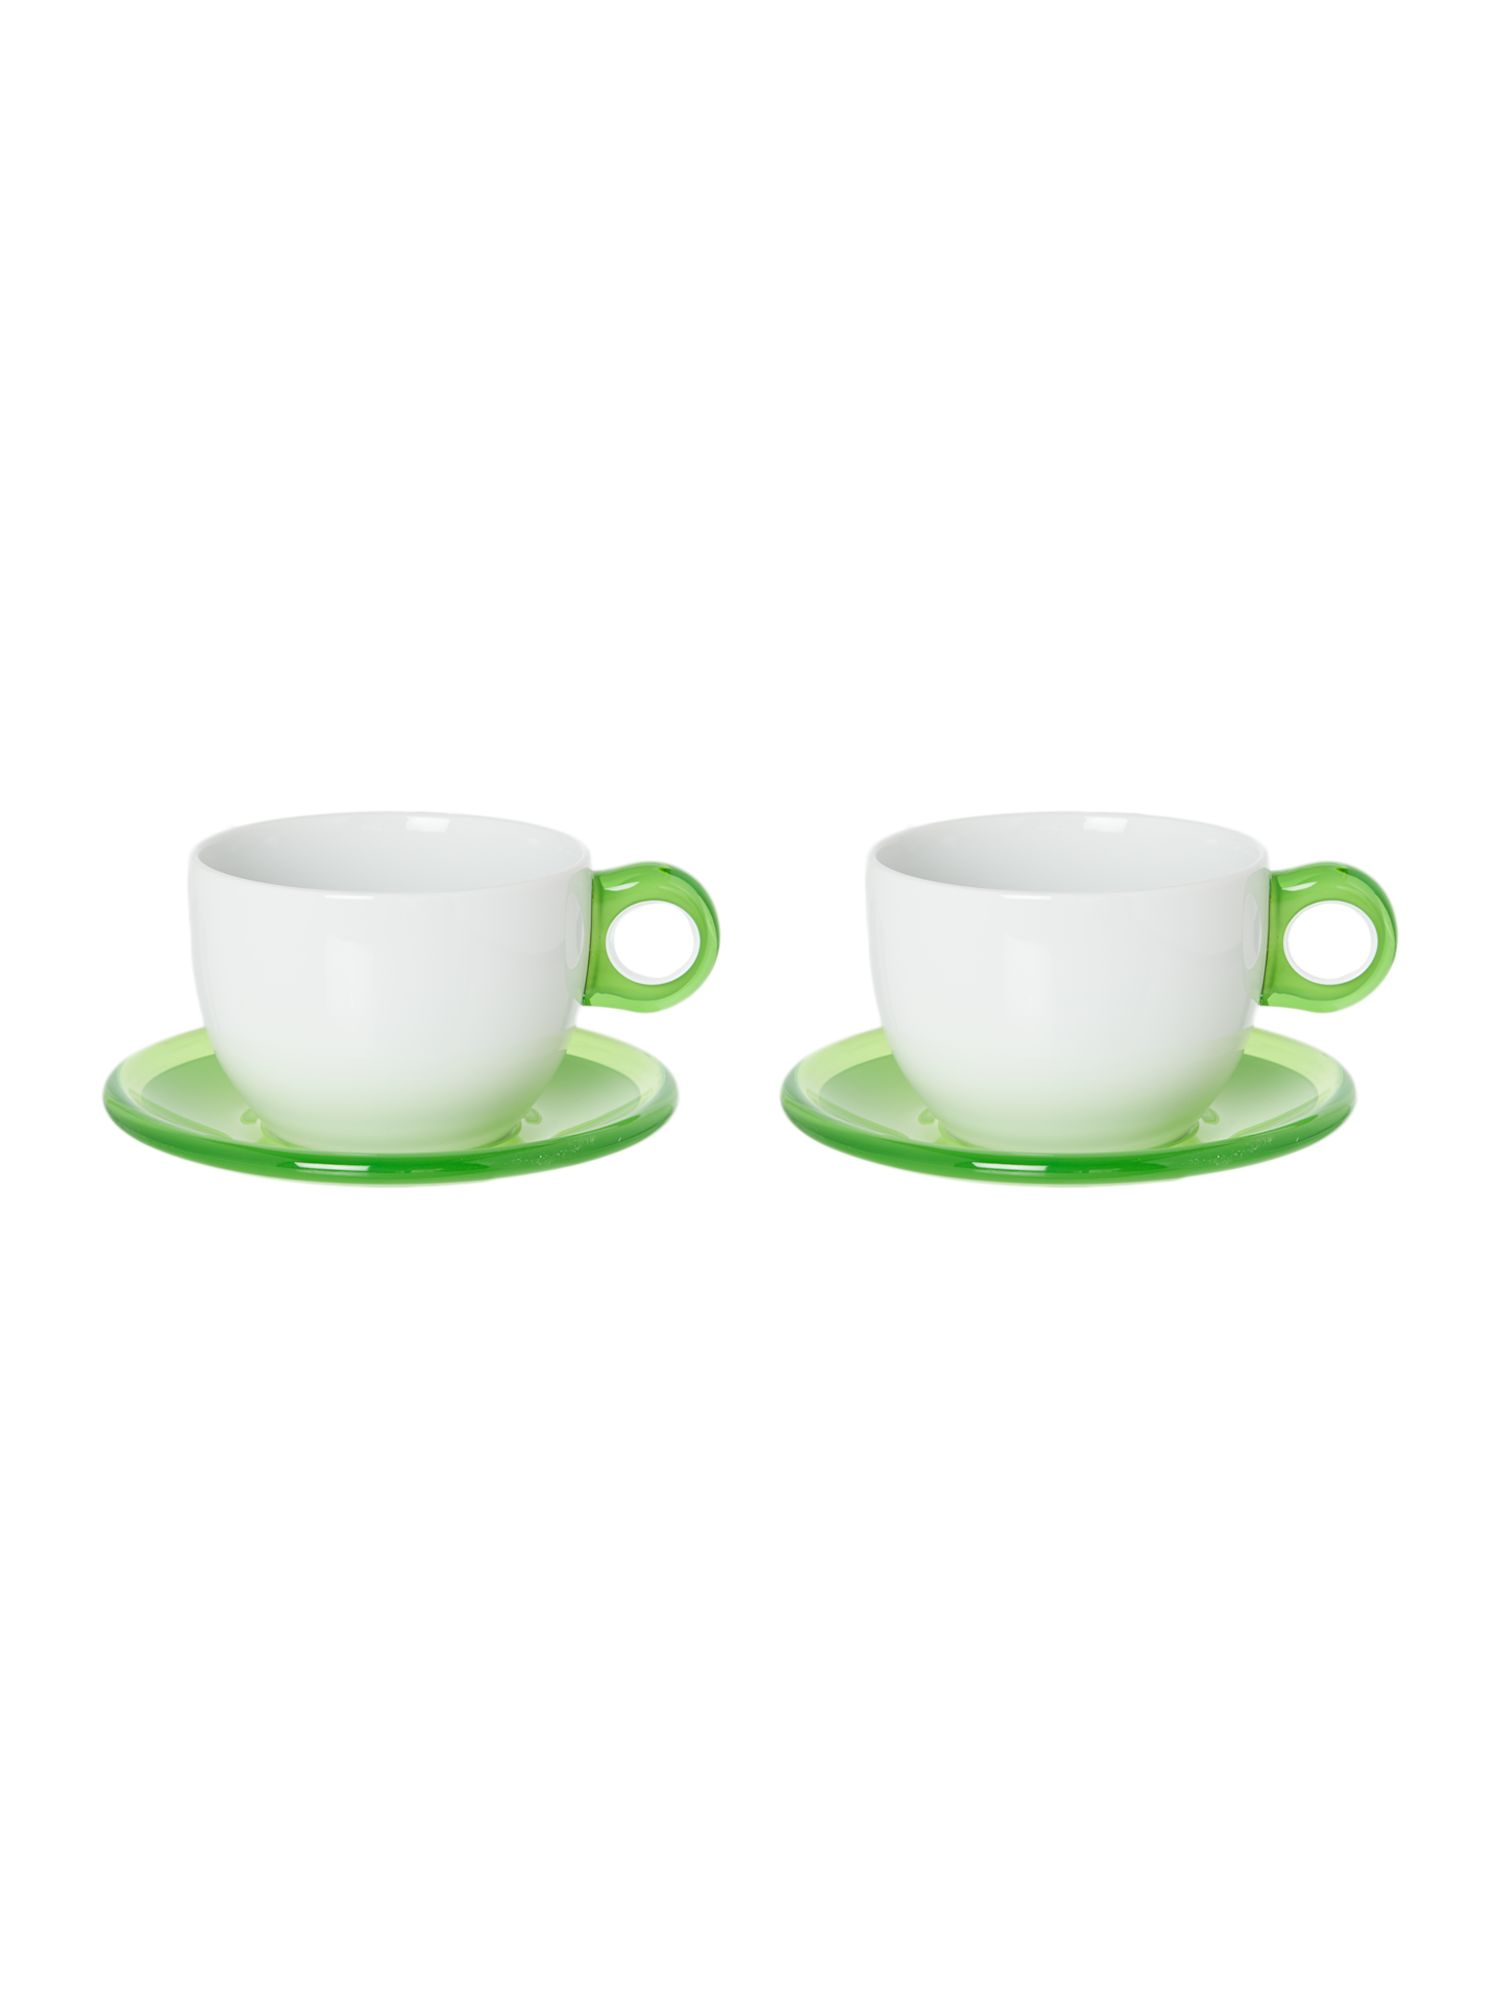 Set of 2 Breakfast cups with Saucers Green